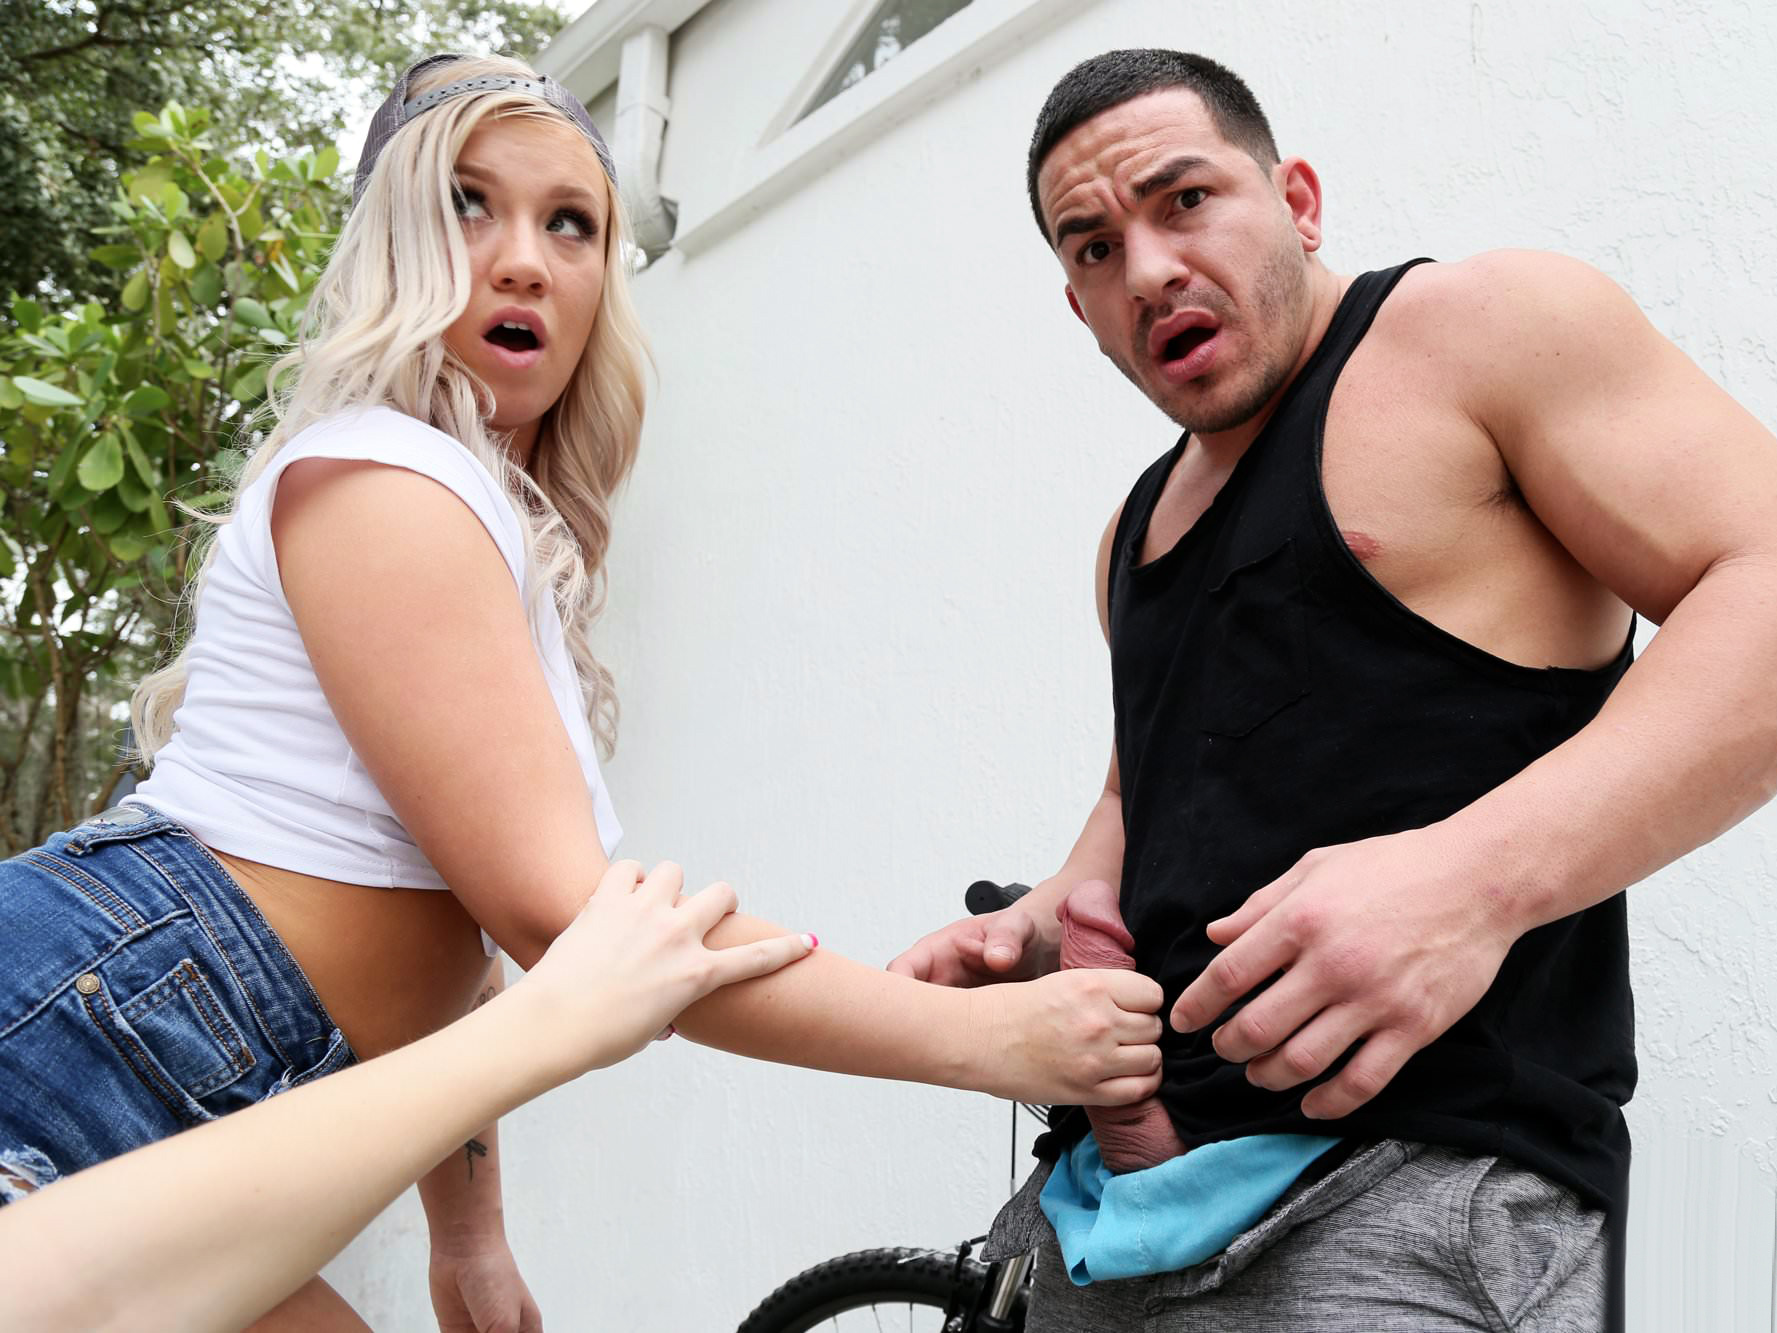 Threesome With Hot Bike Thief